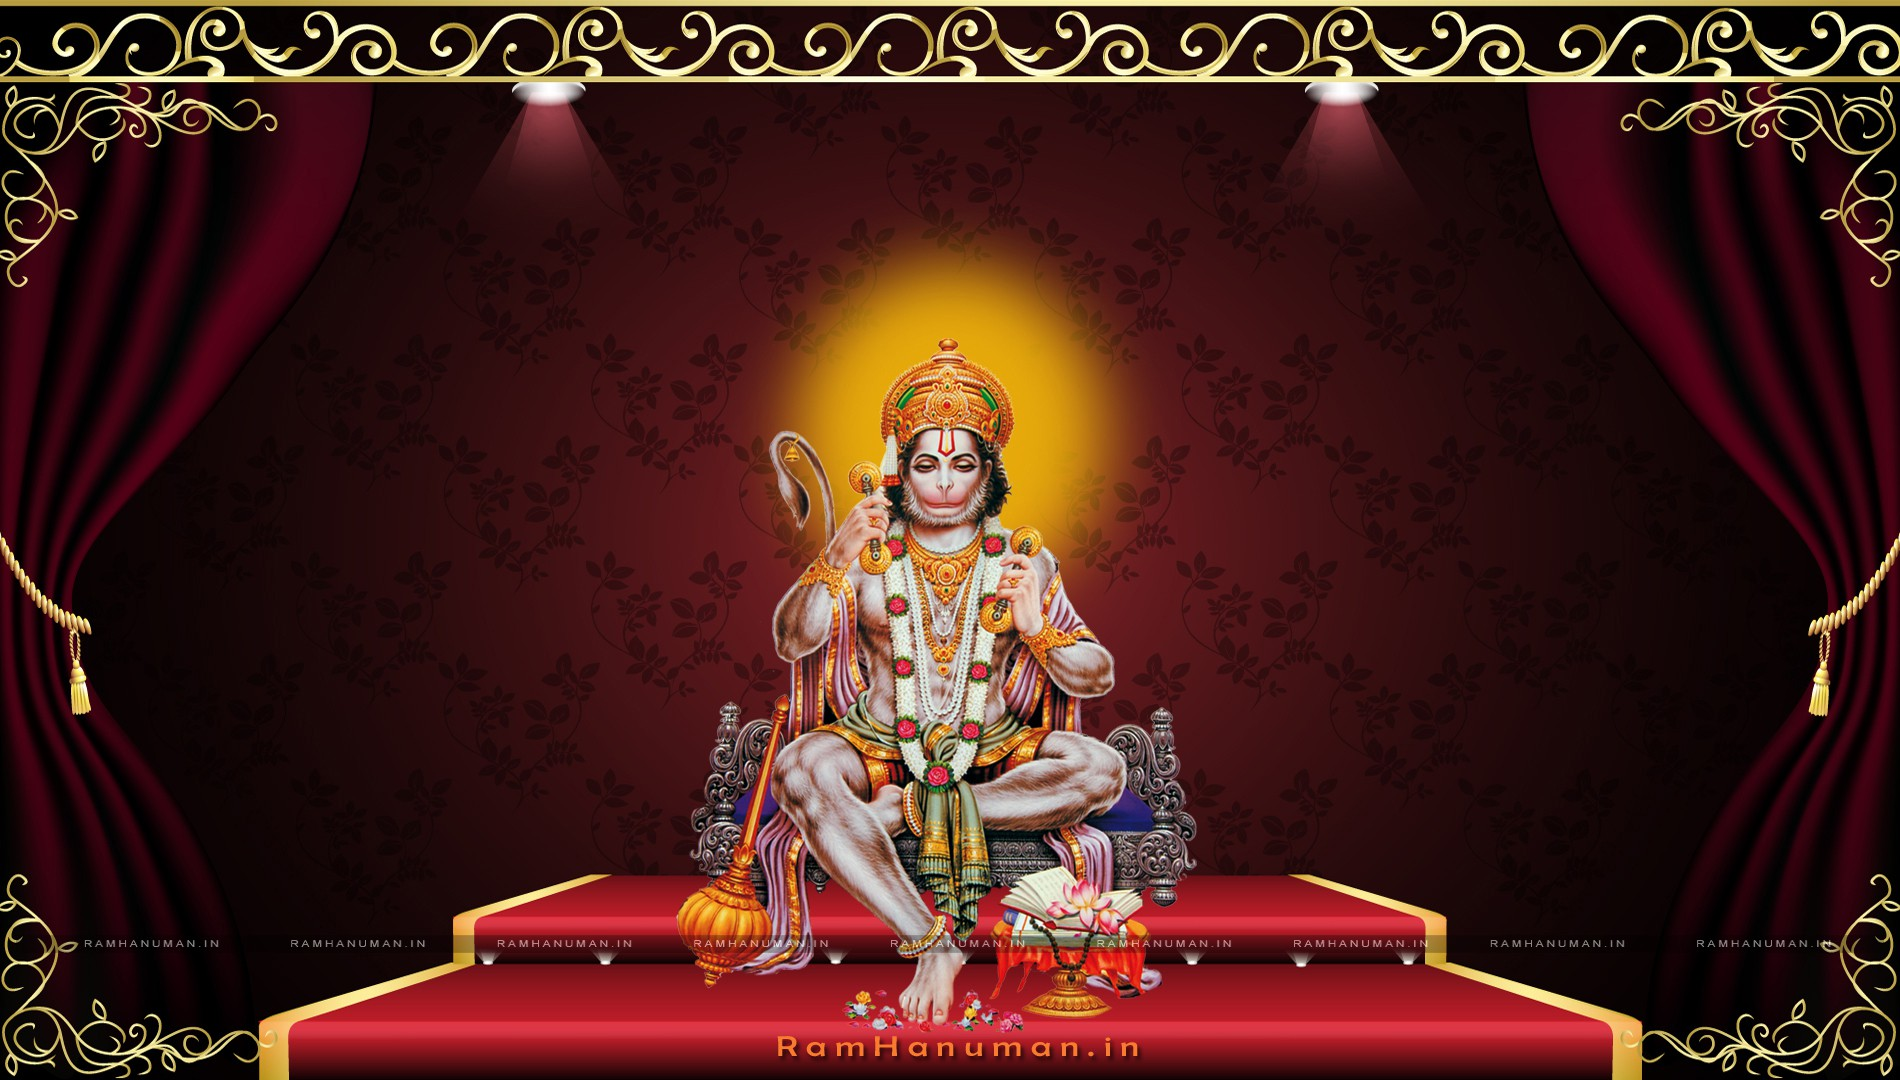 Lord Rama 3d Wallpapers Download Hanuman Ji Wallpaper Full Size Hd Gallery